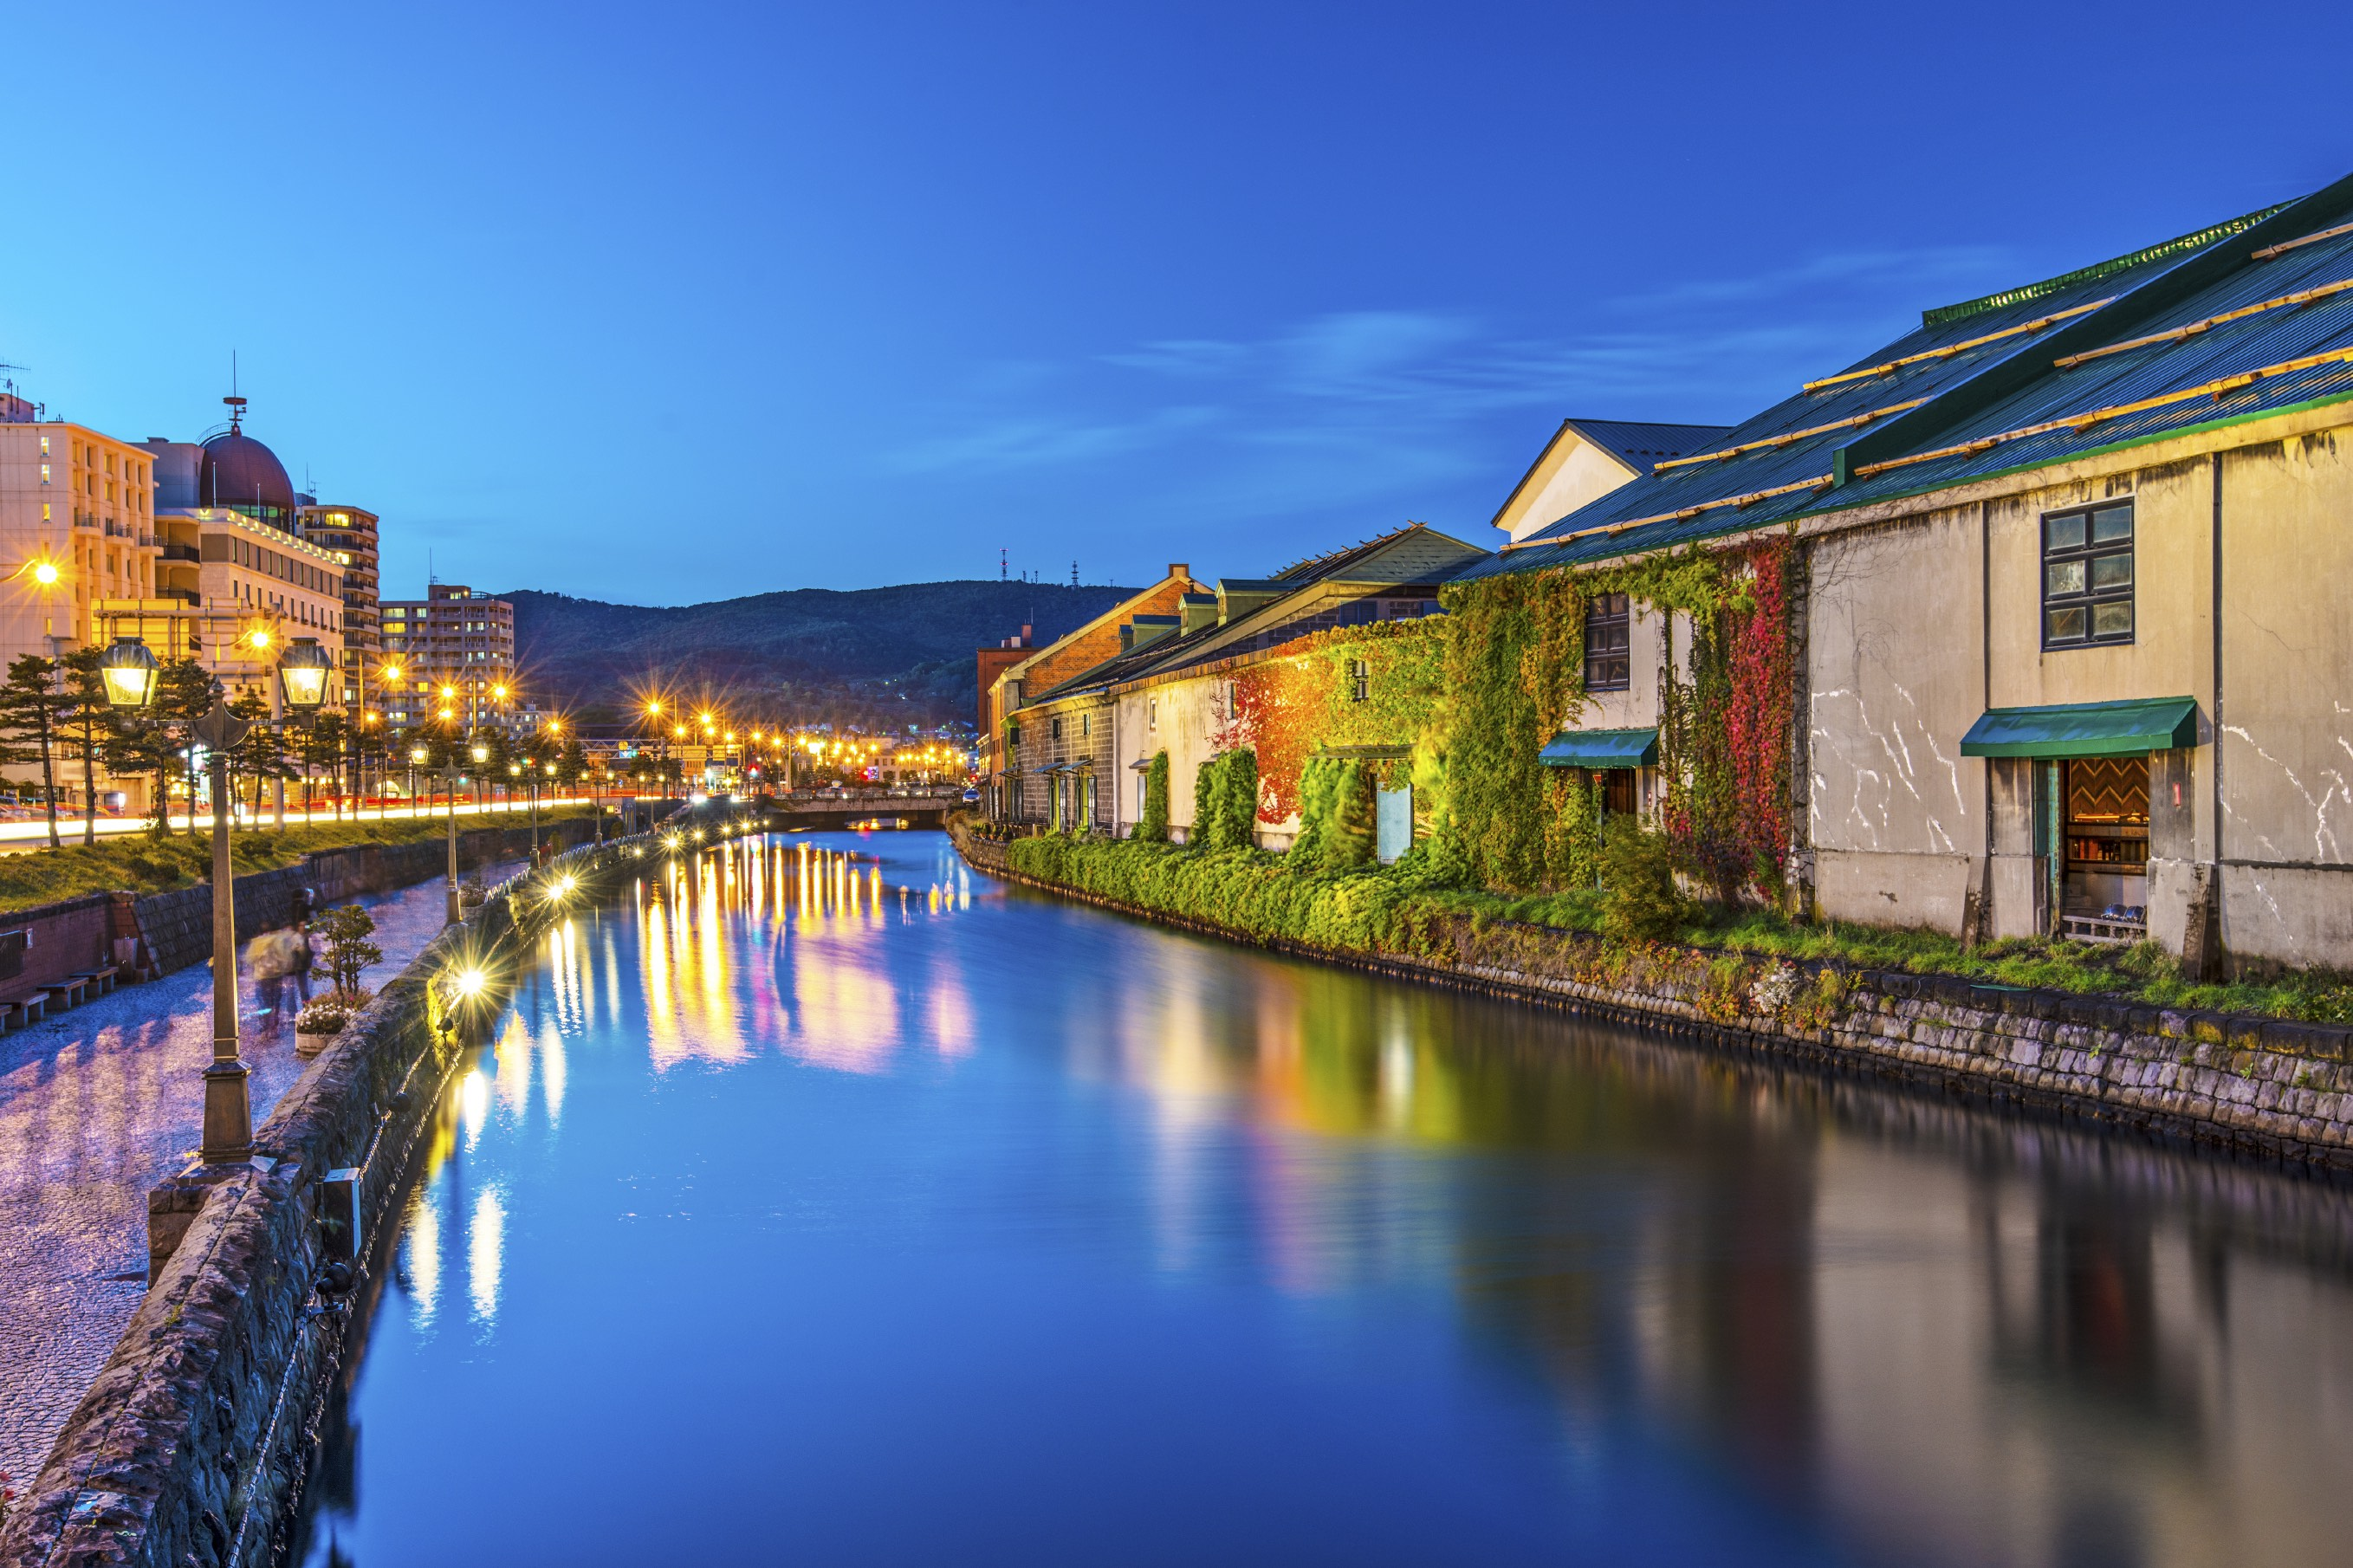 Canals of Otaru, Japan.